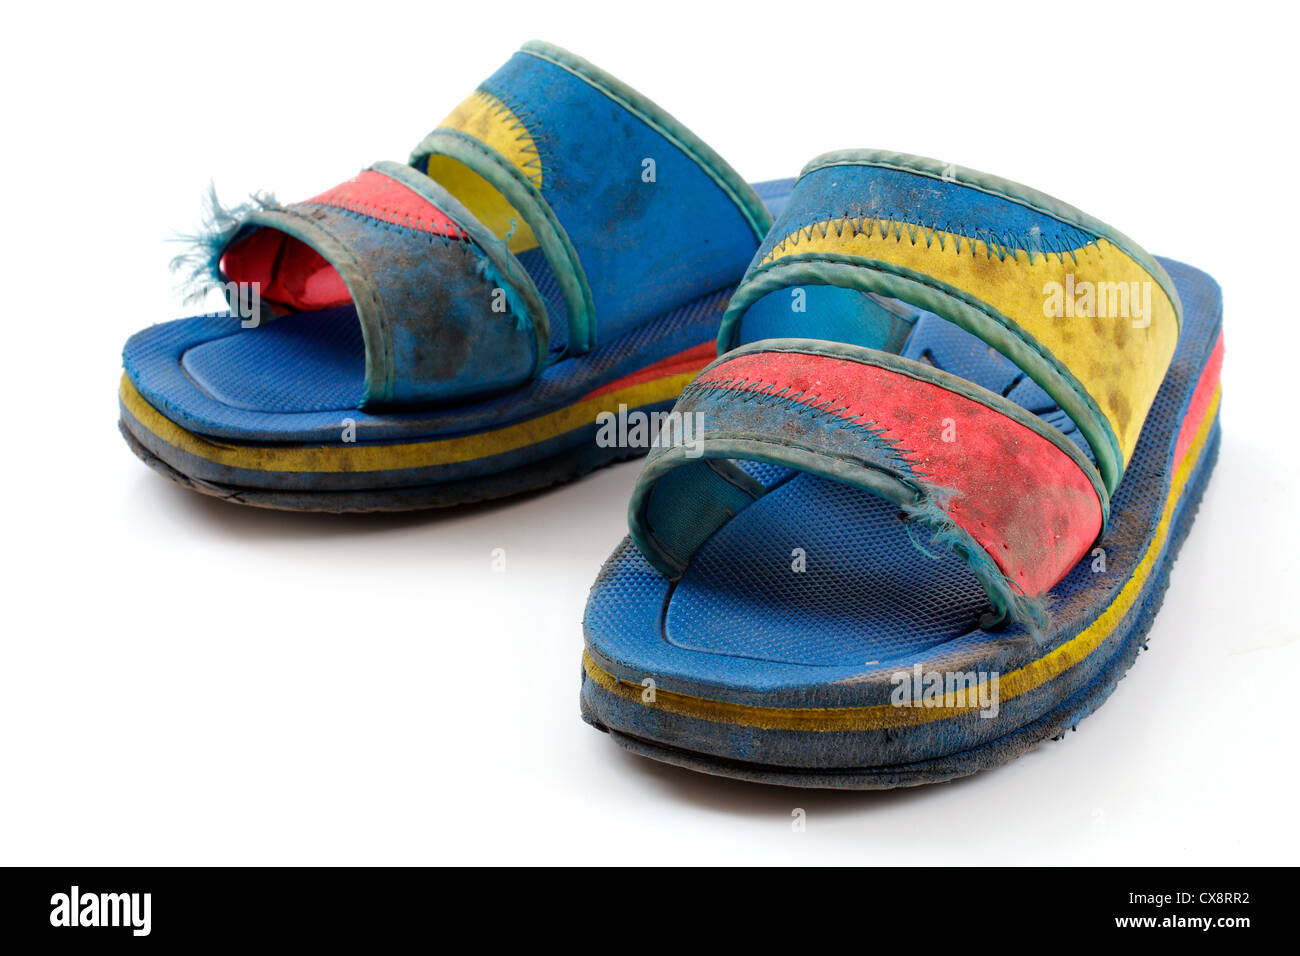 dirty old beach shoes on a white background - Stock Image